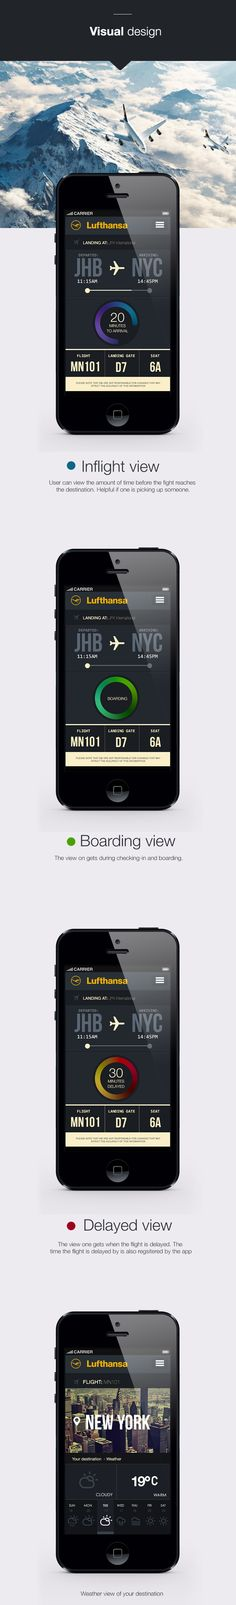 Lufthansa flight tracking app IOS7 on Behance